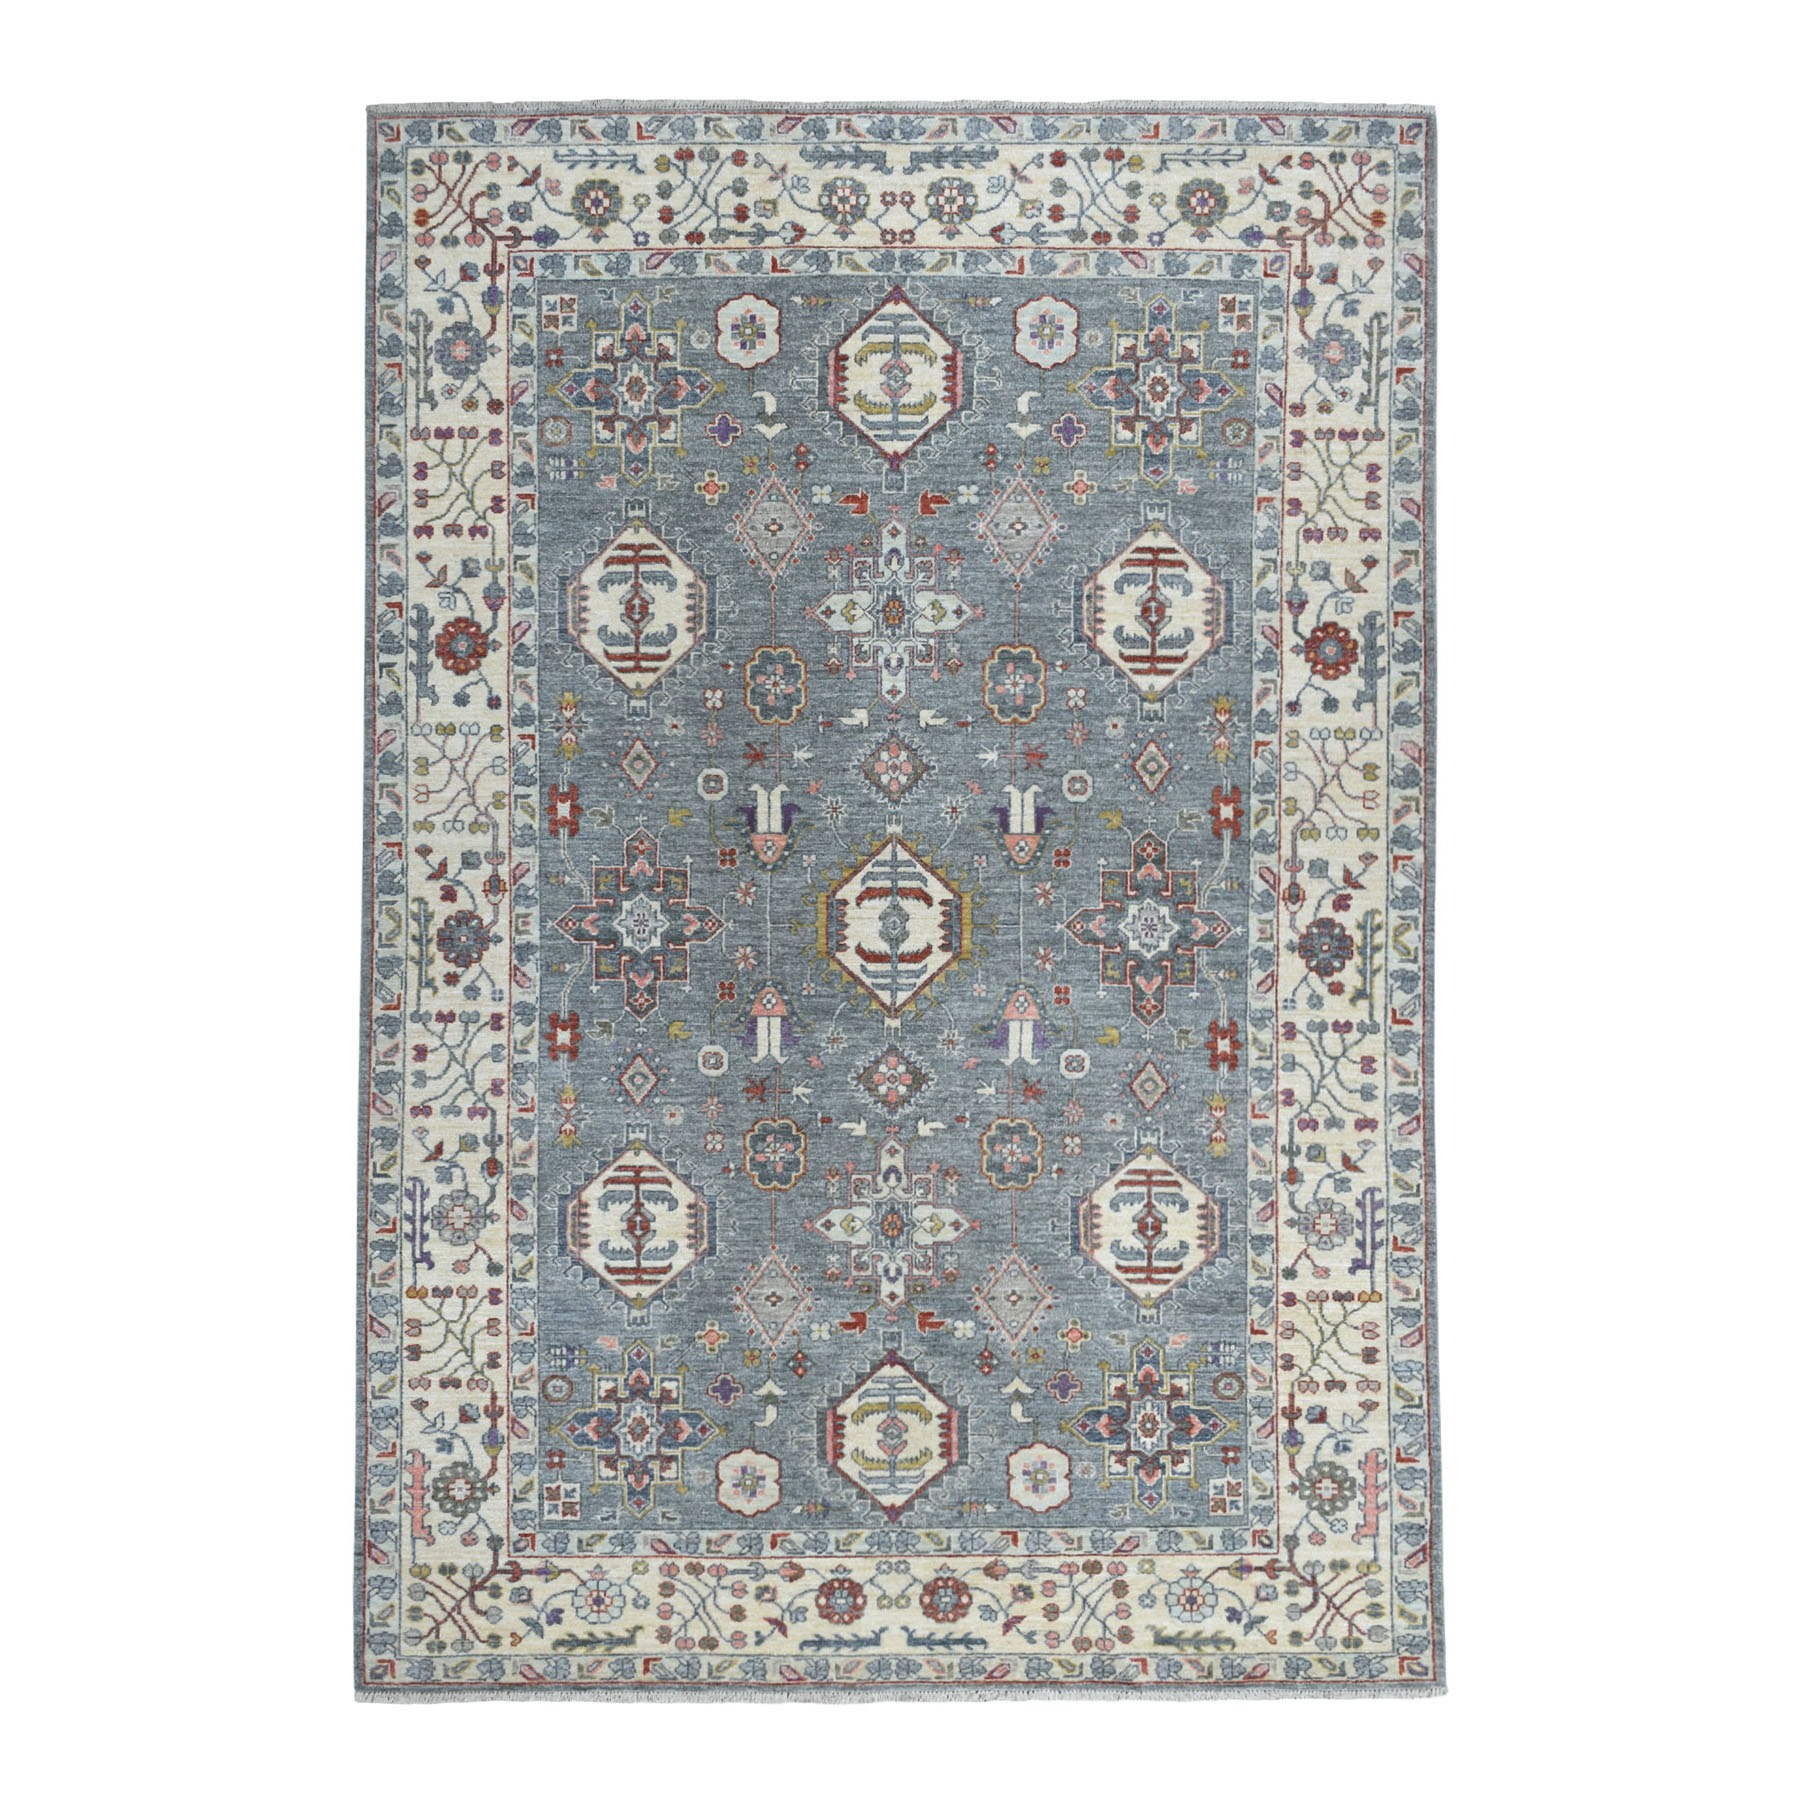 6-1 x9- Colorful Karajeh Design Afghani Wool Peshawar Hand Knotted Oriental Rug